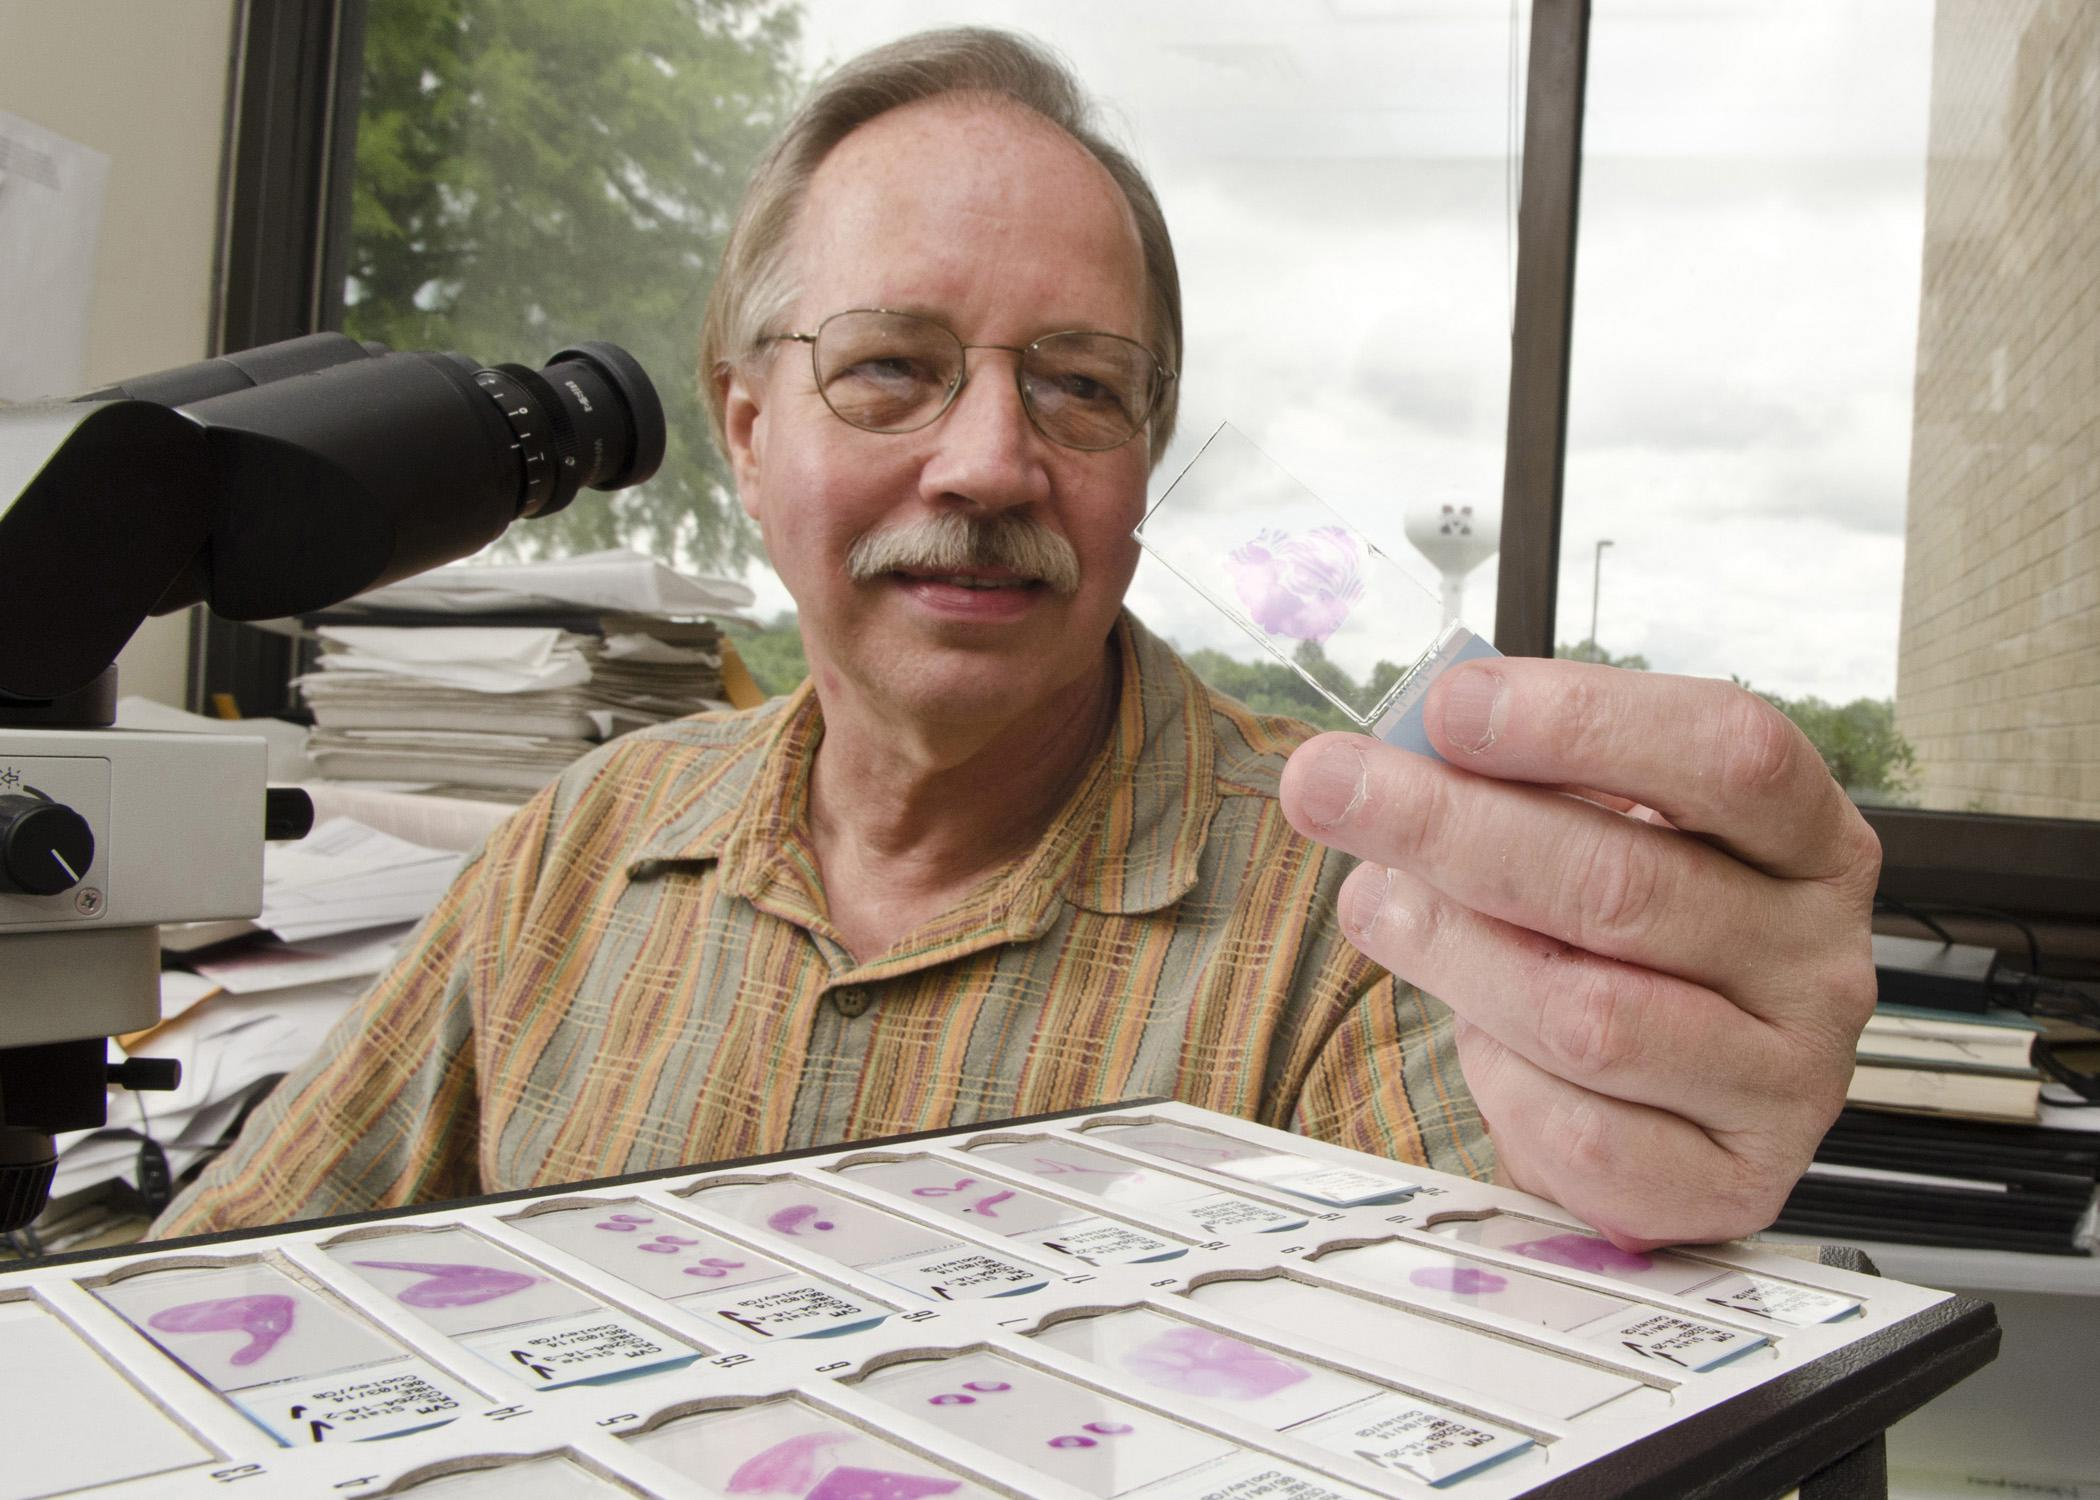 Veterinary researcher Dr. Jim Cooley examines pathology slides in his office at the Mississippi State University College of Veterinary Medicine. Cooley recently worked with a colleague at the University of California-Davis to confirm a new bovine virus in Mississippi that previously had been identified only in California. (Photo by MSU College of Veterinary Medicine/Tom Thompson)